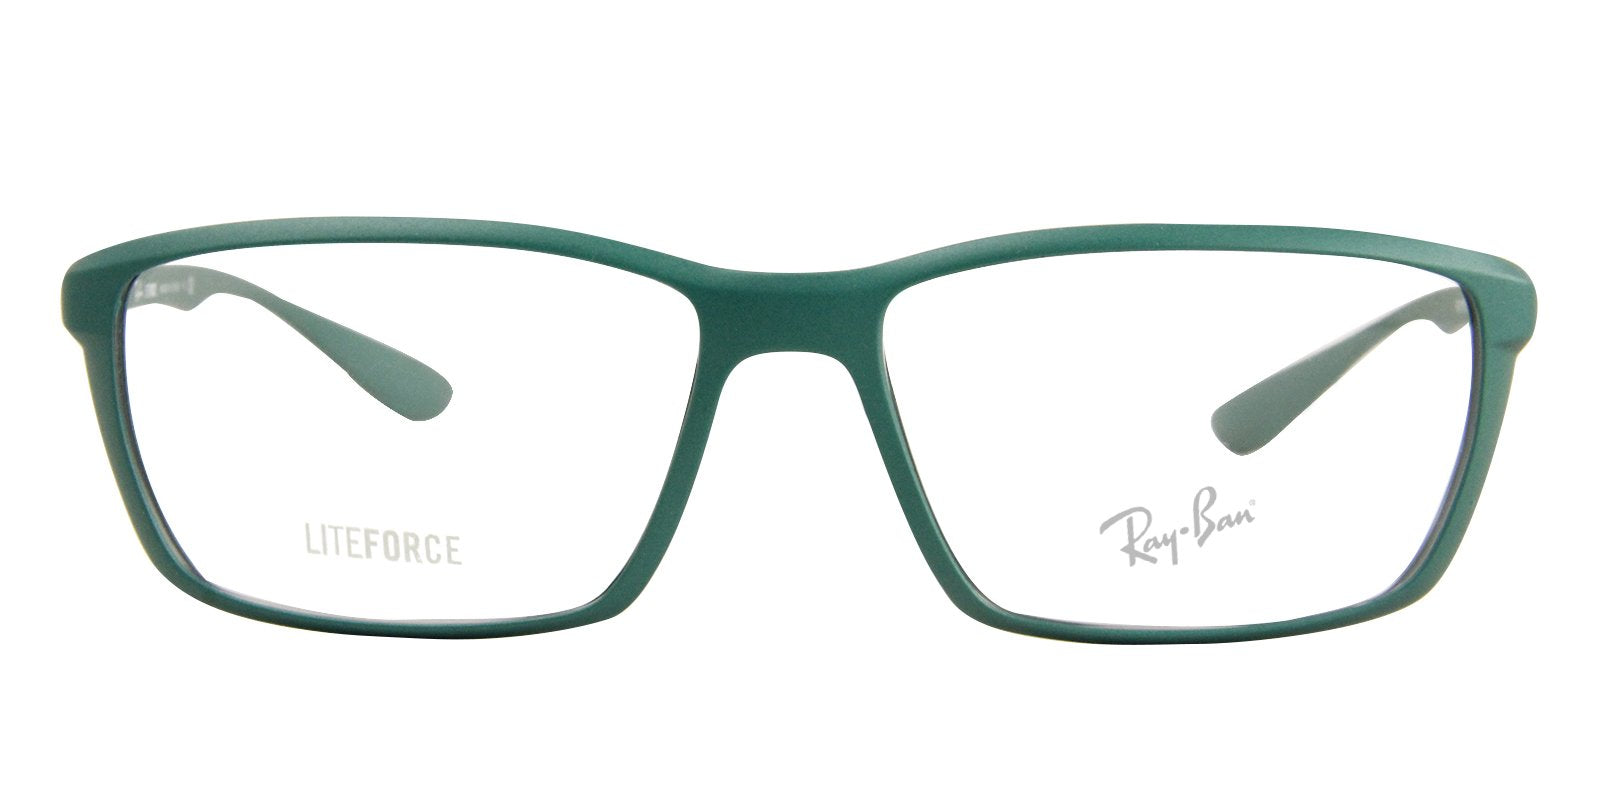 Ray Ban Rx - RX7018 Green Rectangular Unisex Eyeglasses - 56mm-Eyeglasses-Designer Eyes